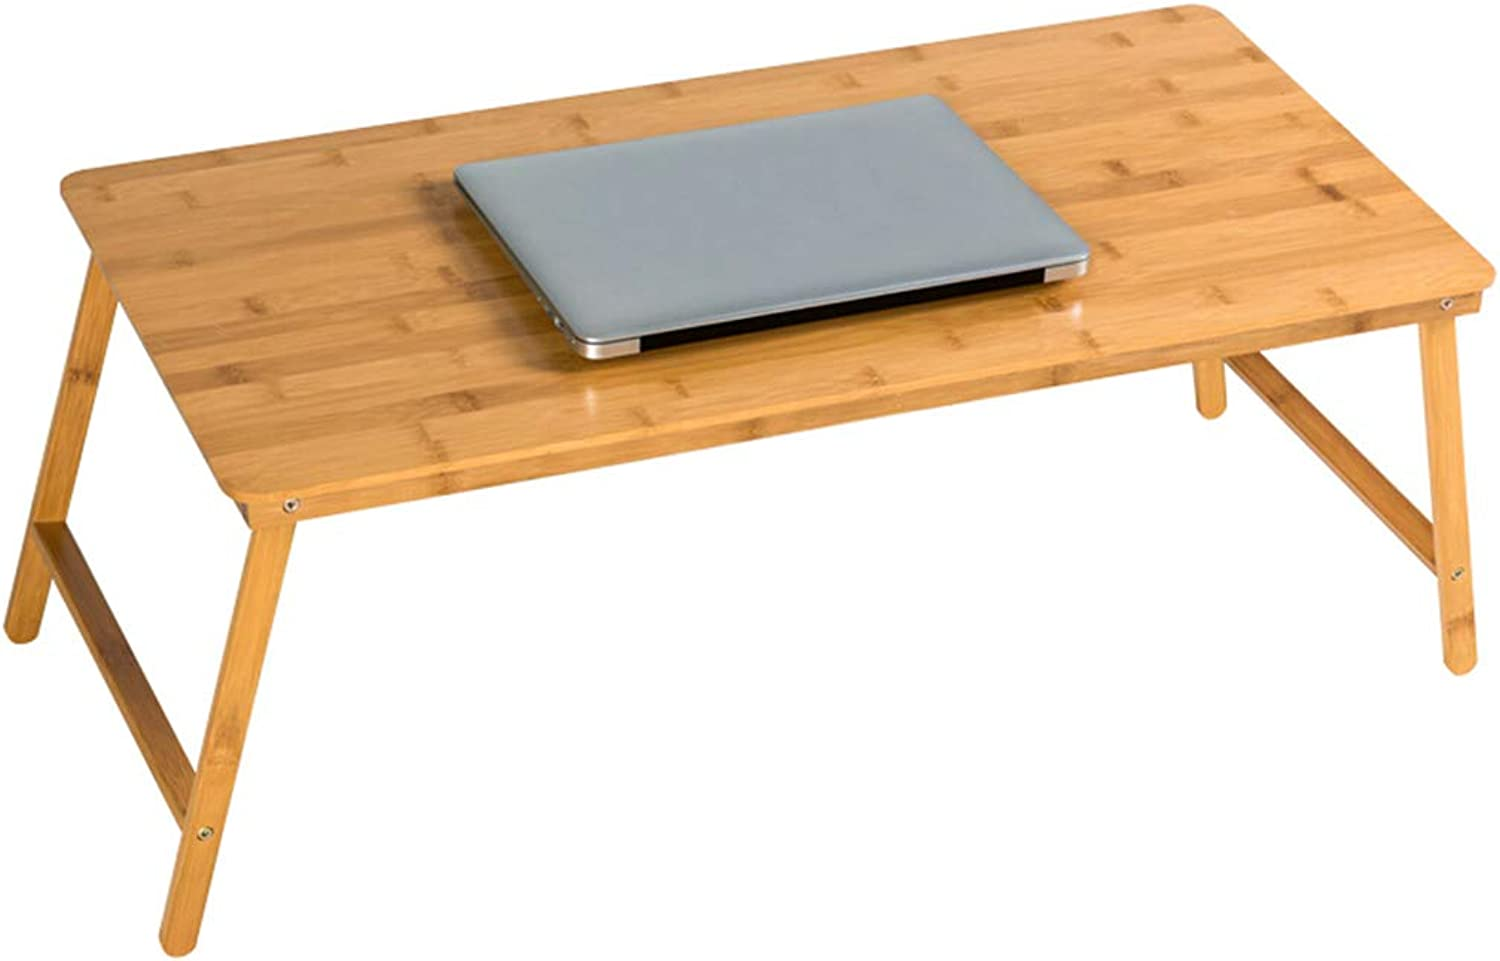 A-Fort Table Folding Laptop Desk, Small Table with Bed, Dormitory Lazy Simple Desk, Study Desk, (Storage 80cm Long Large) (color   Brown)